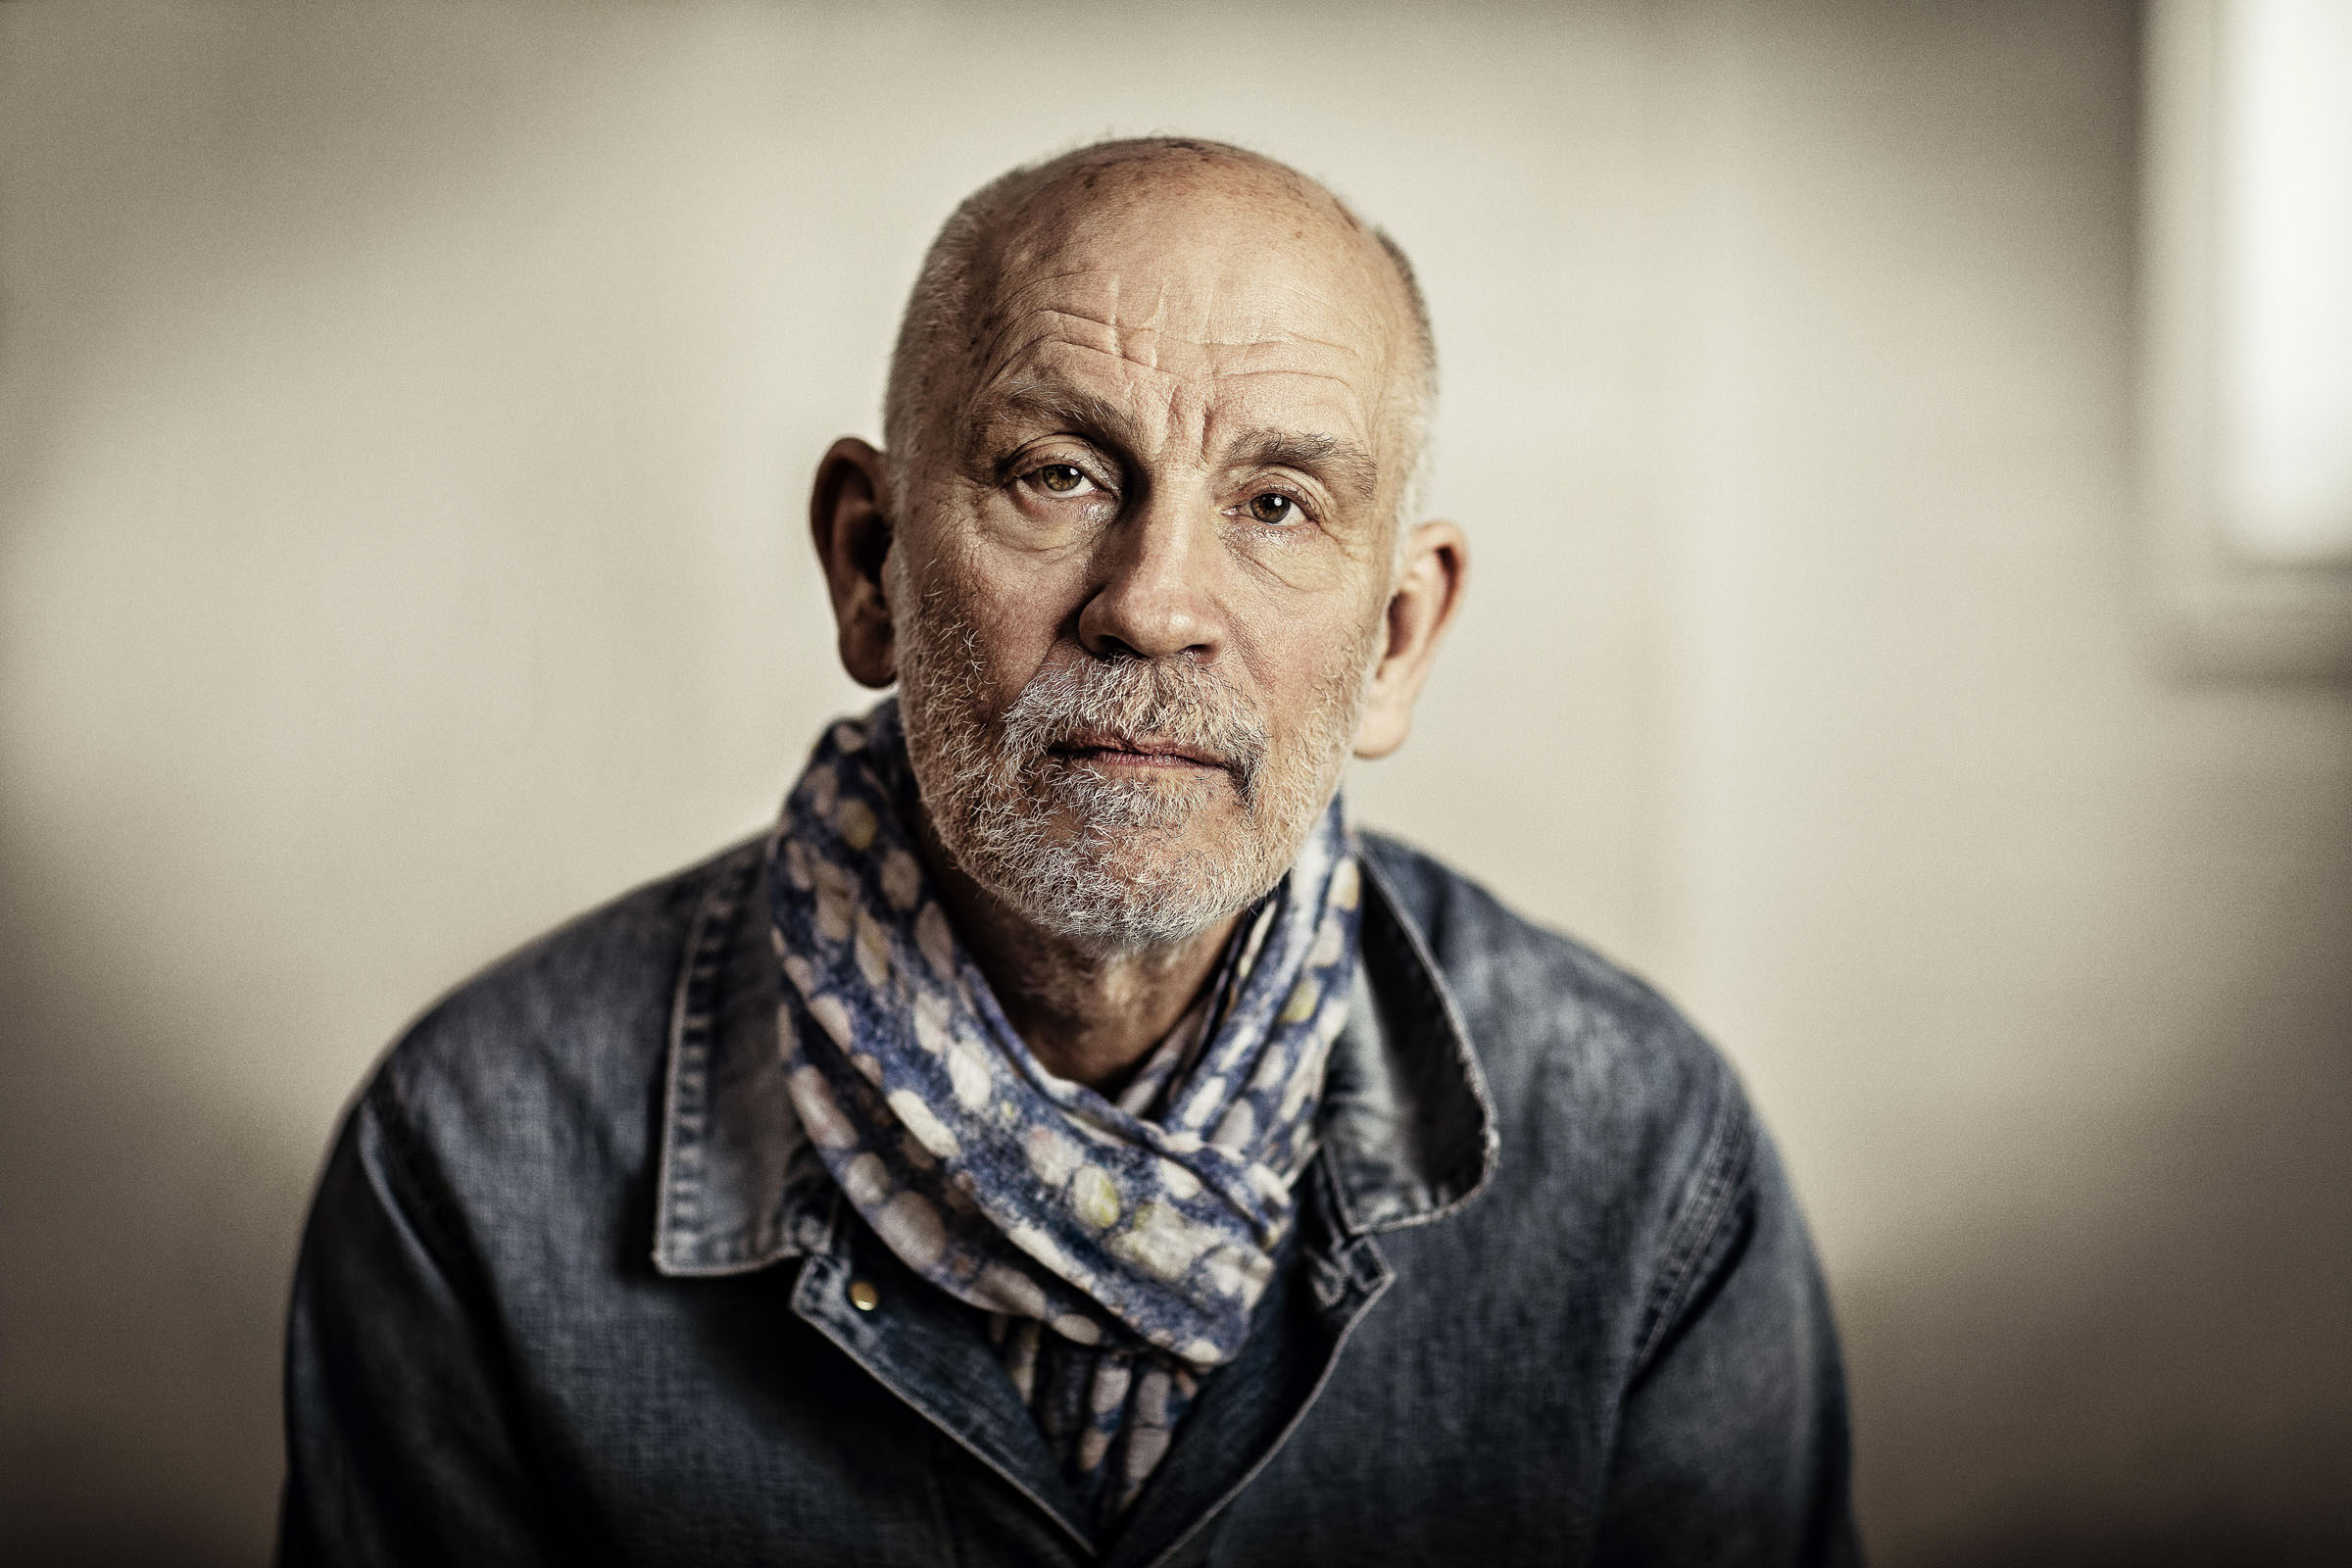 The actor John Malkovich